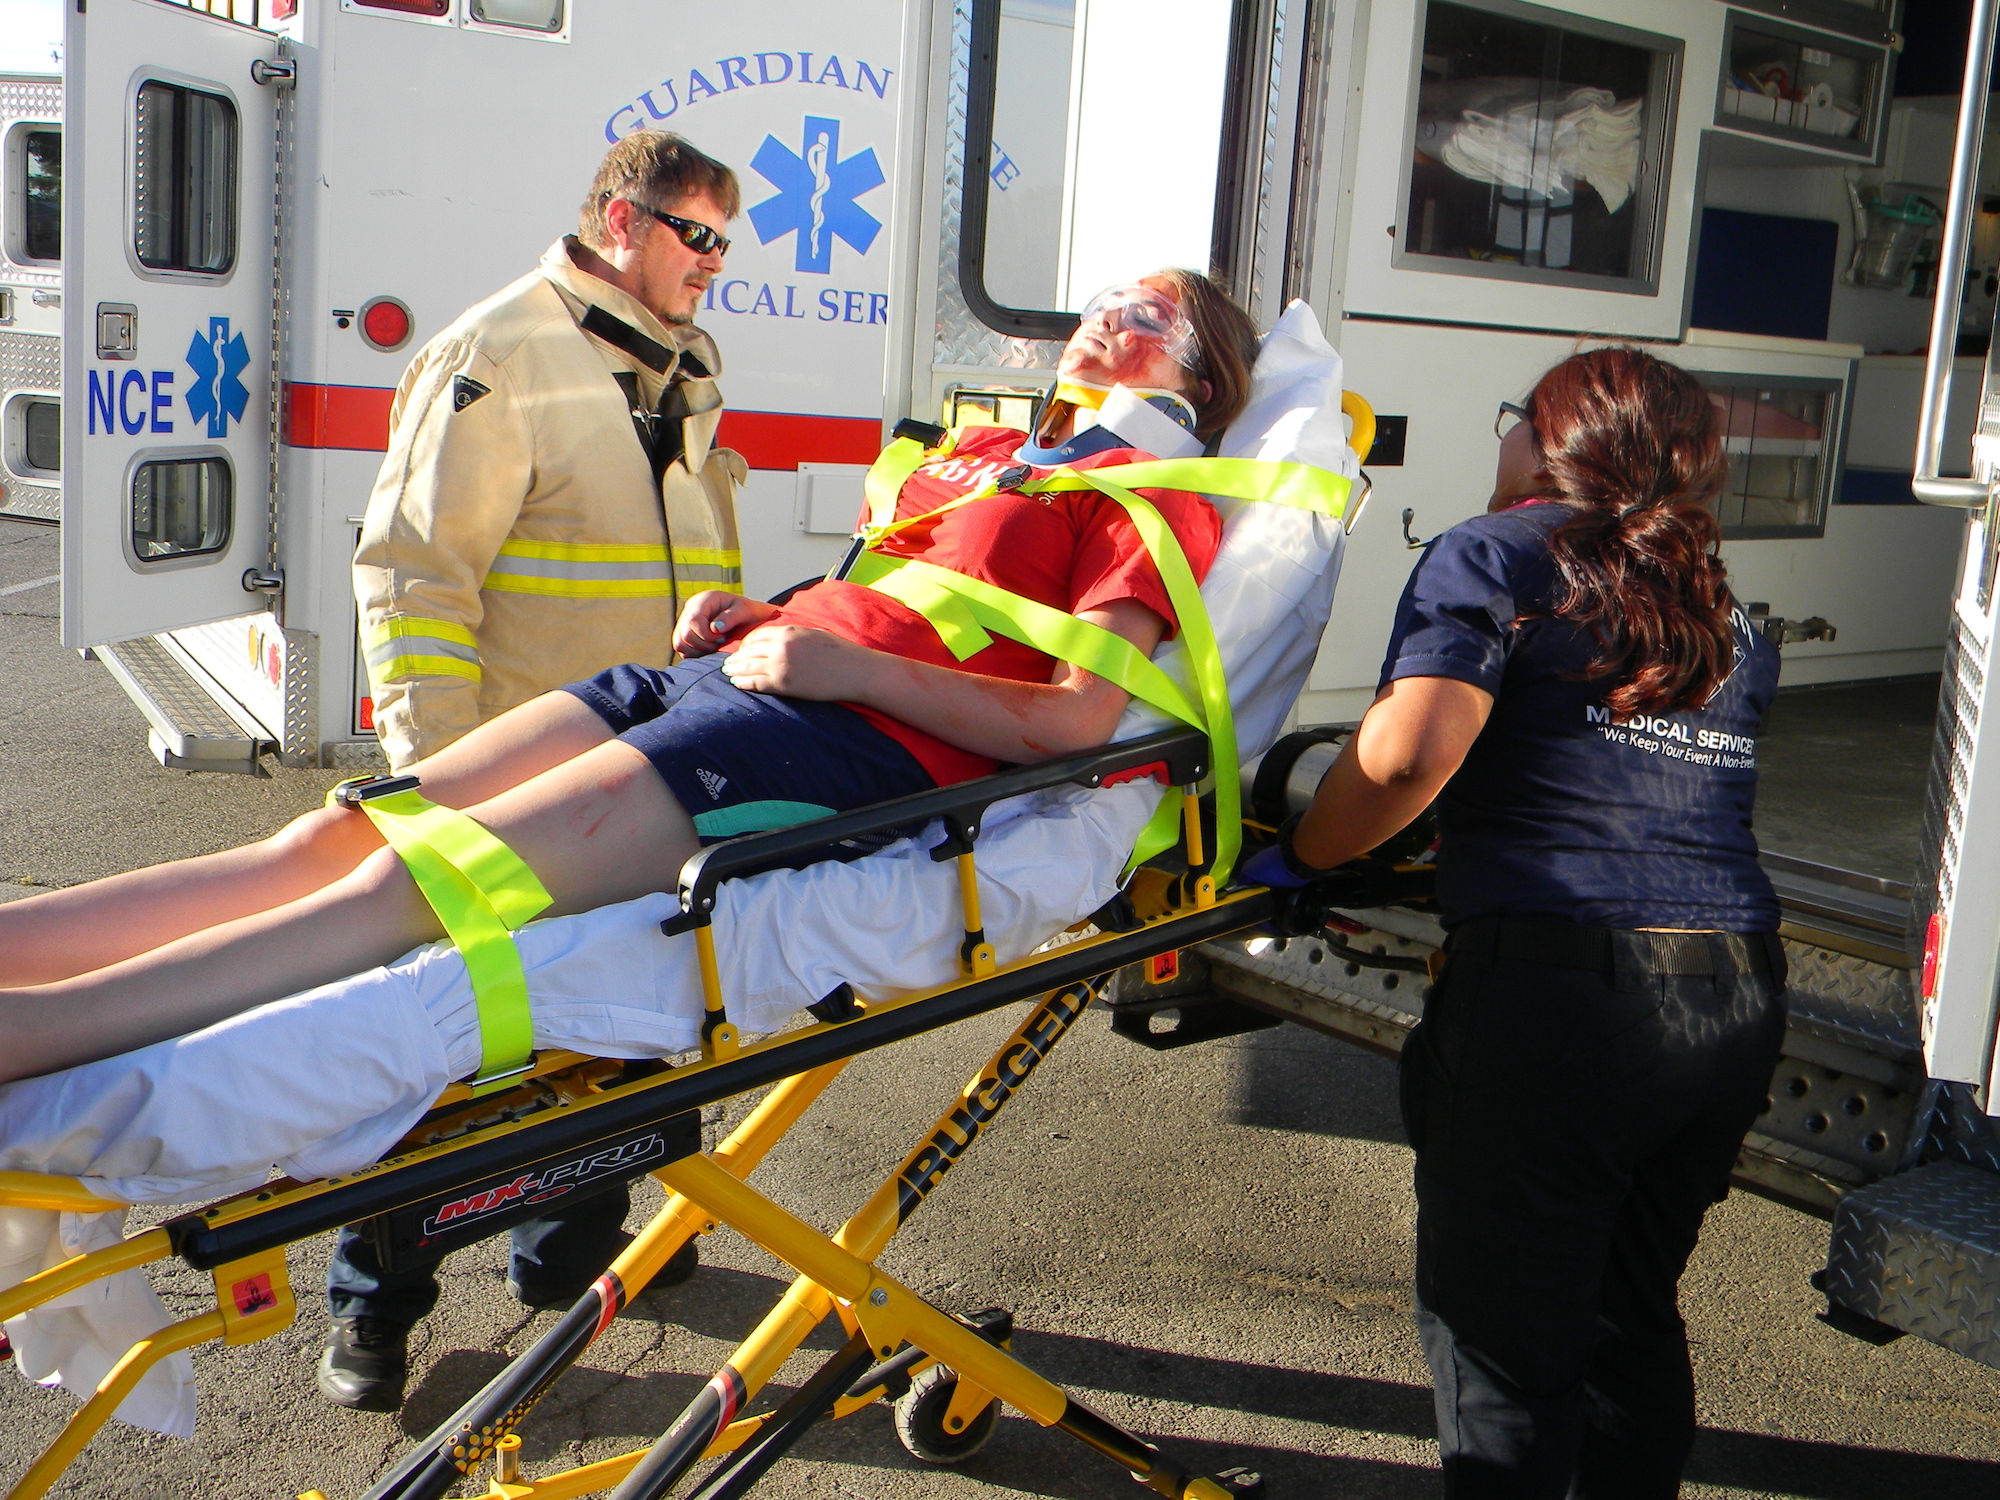 Becoming An EMT In Las Vegas – Here Is What You Need To Know